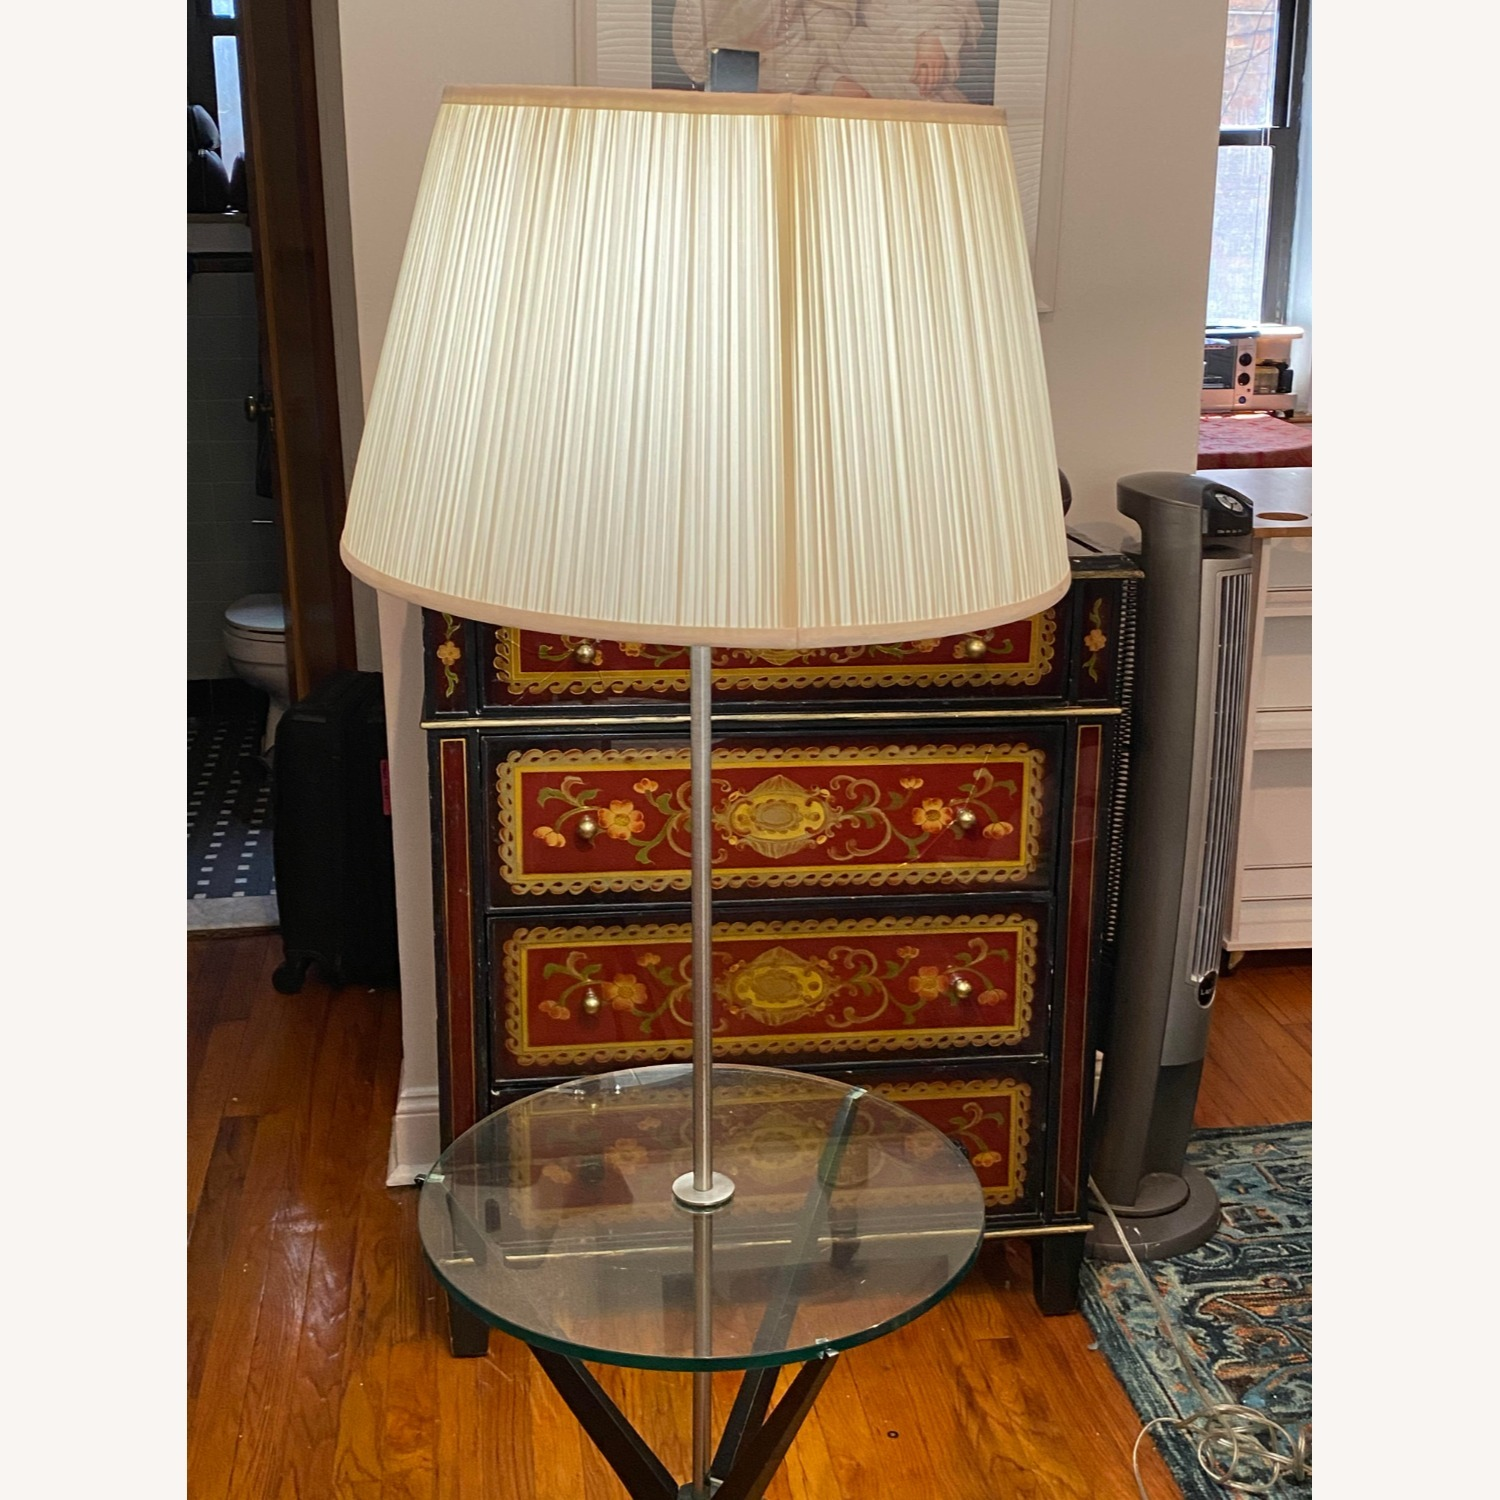 Glass Tray Table Floor Lamp w/ Drum Shade - image-1